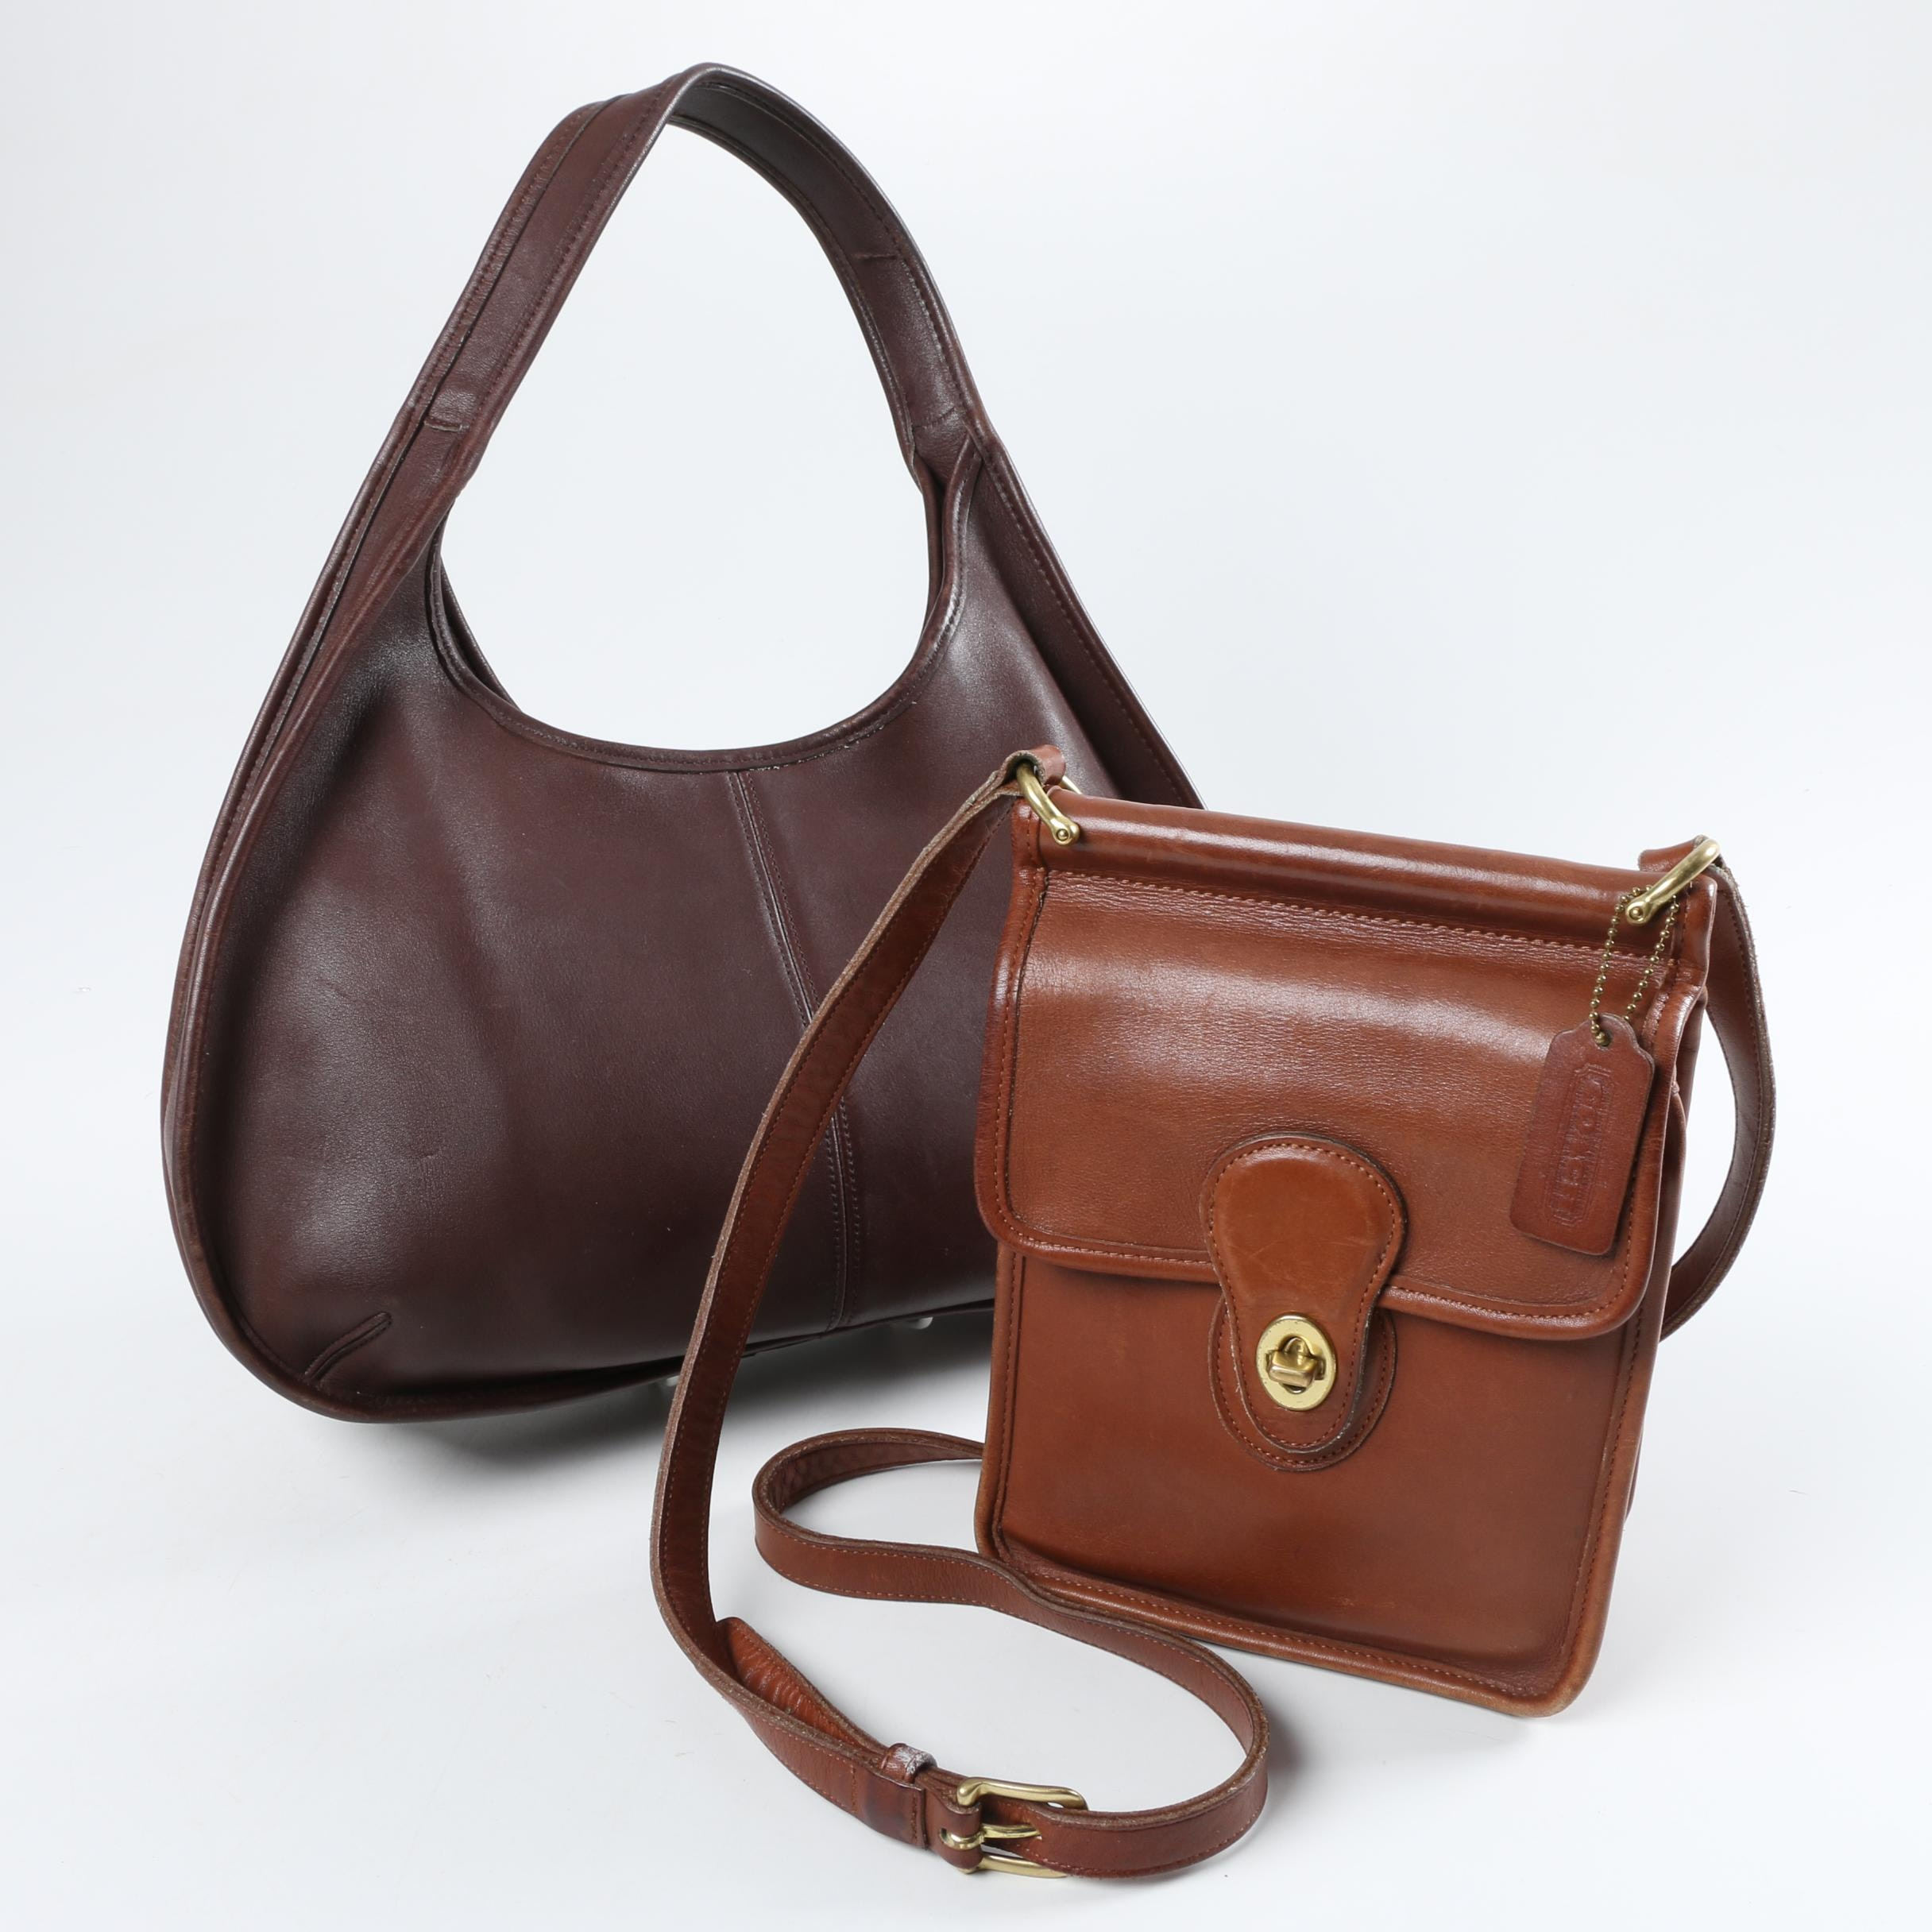 Vintage Coach Handbags Including a Coach Murphy Crossbody Bag